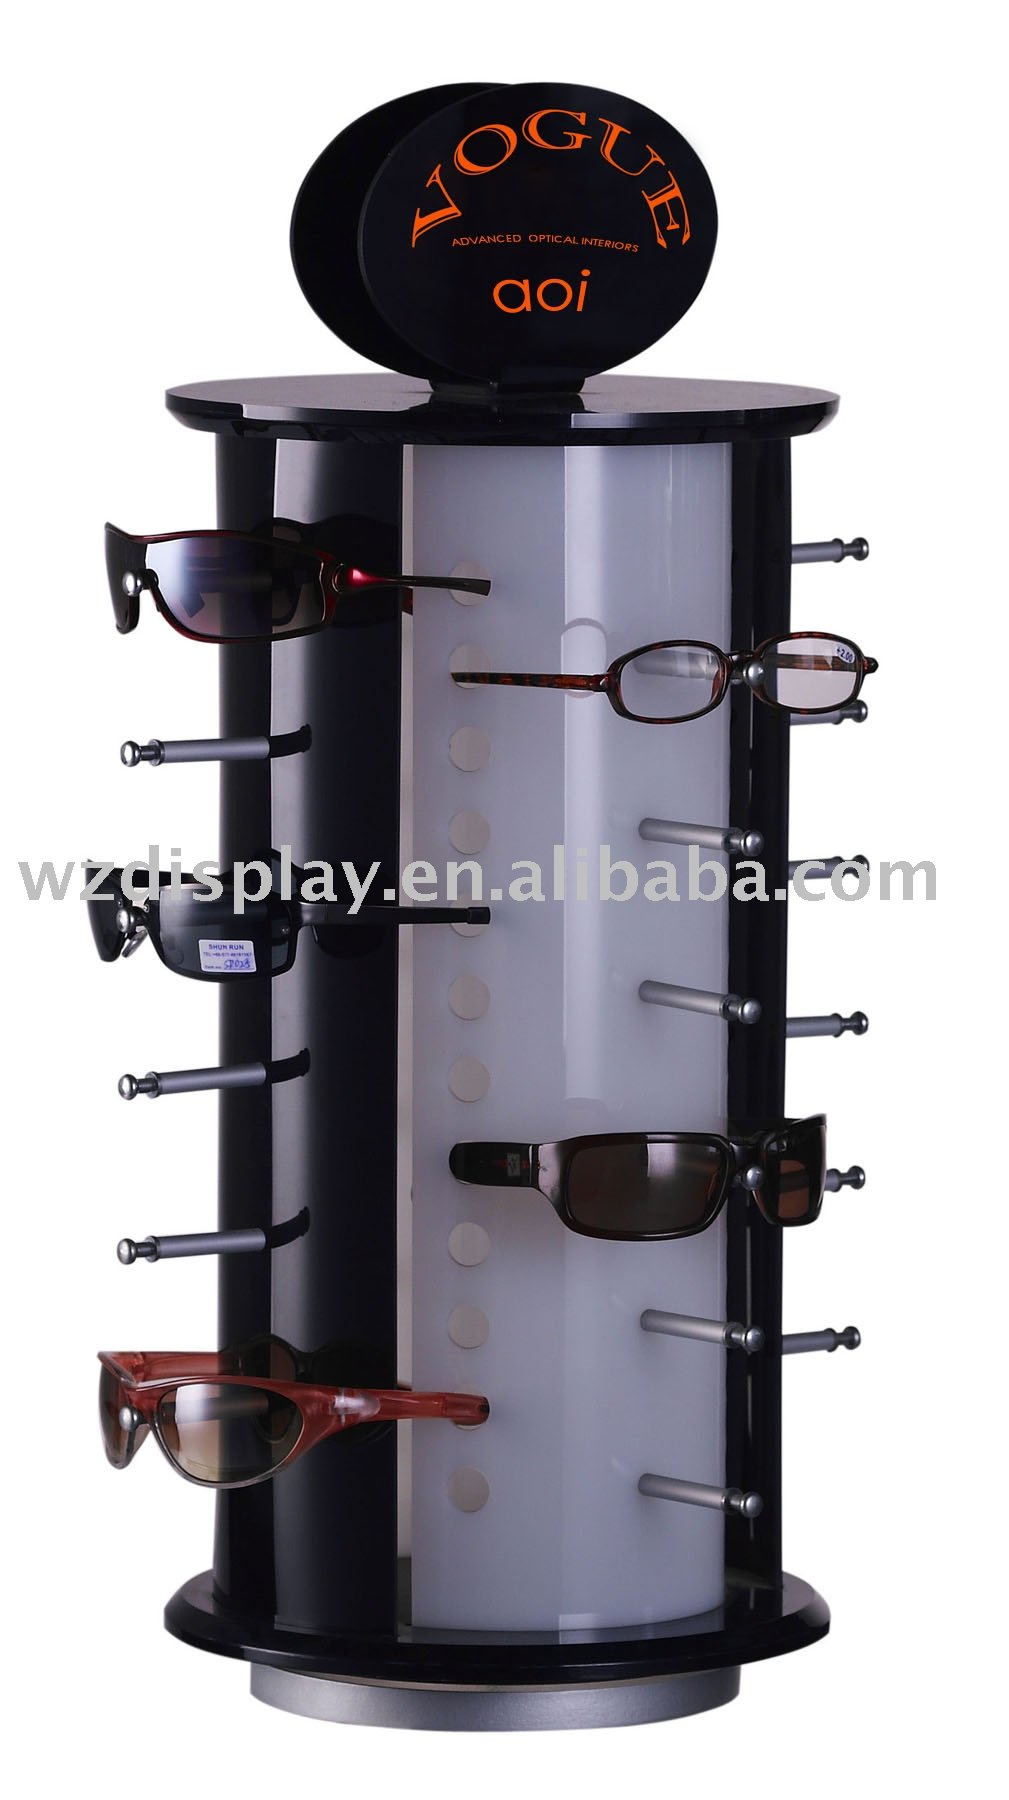 acrylic revolving sunglasses display stand; counter eyeglasses display stand;rotatable glasses display countertop